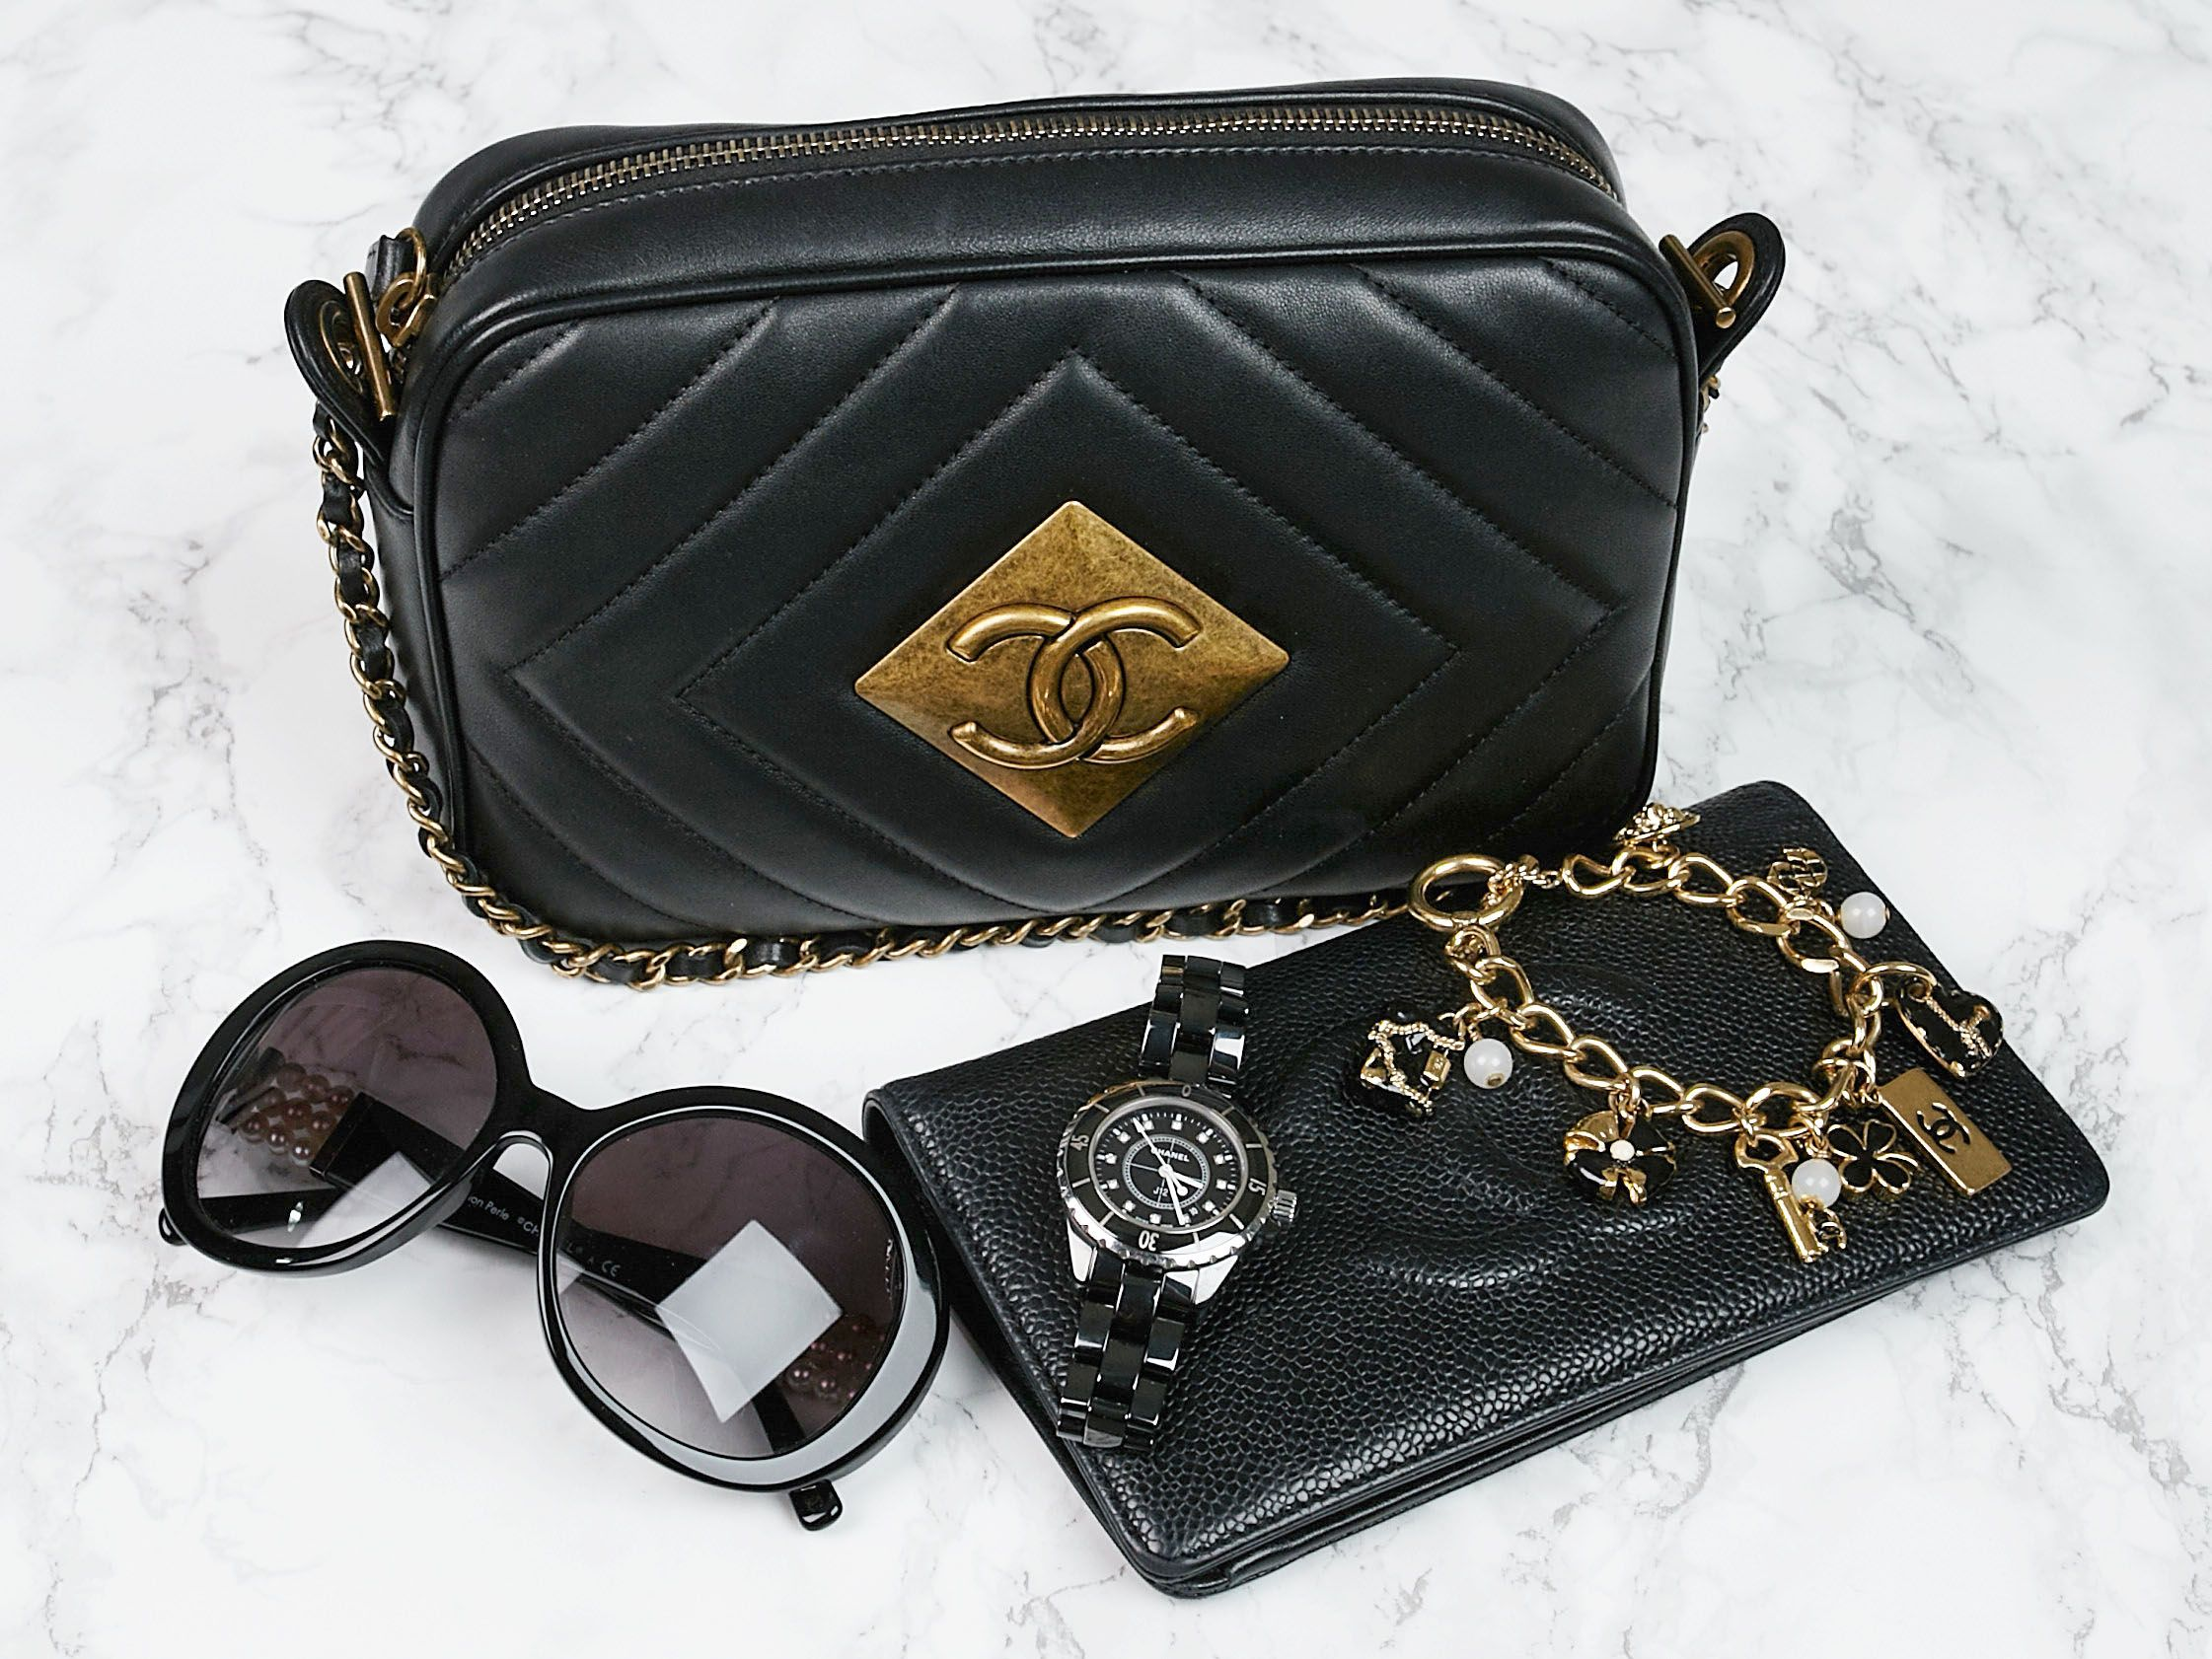 b249990d243611 Staring the week off right with all black Chanel essentials! - Yoogi's  Closet | #Chanel